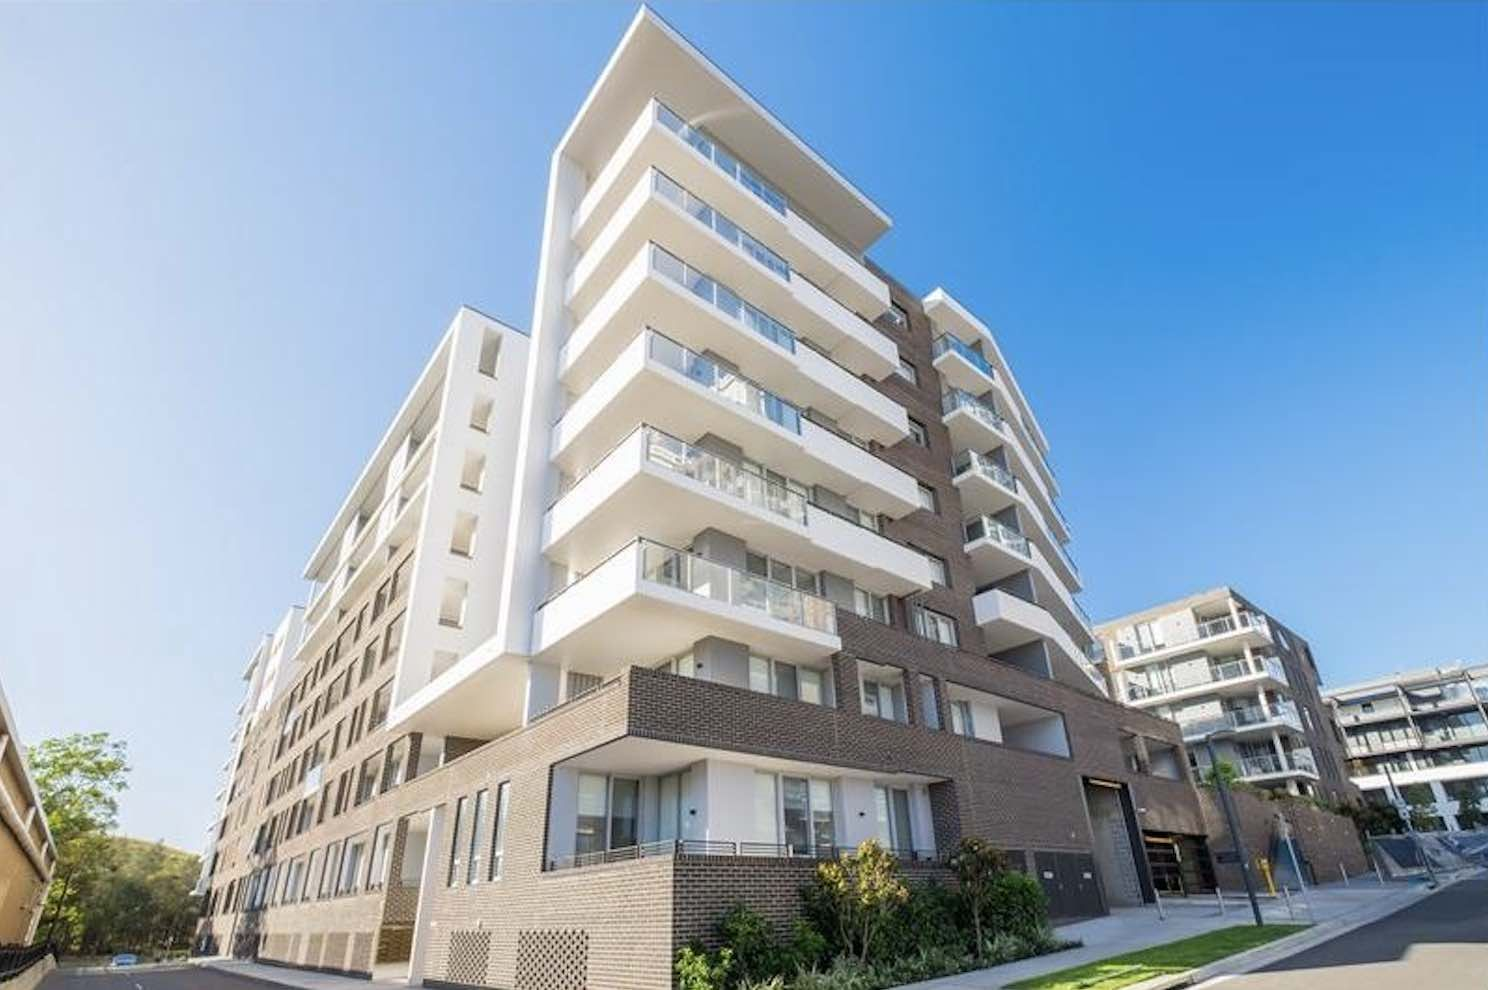 109/41 Hill Rd, Wentworth Point NSW 2127, Image 0